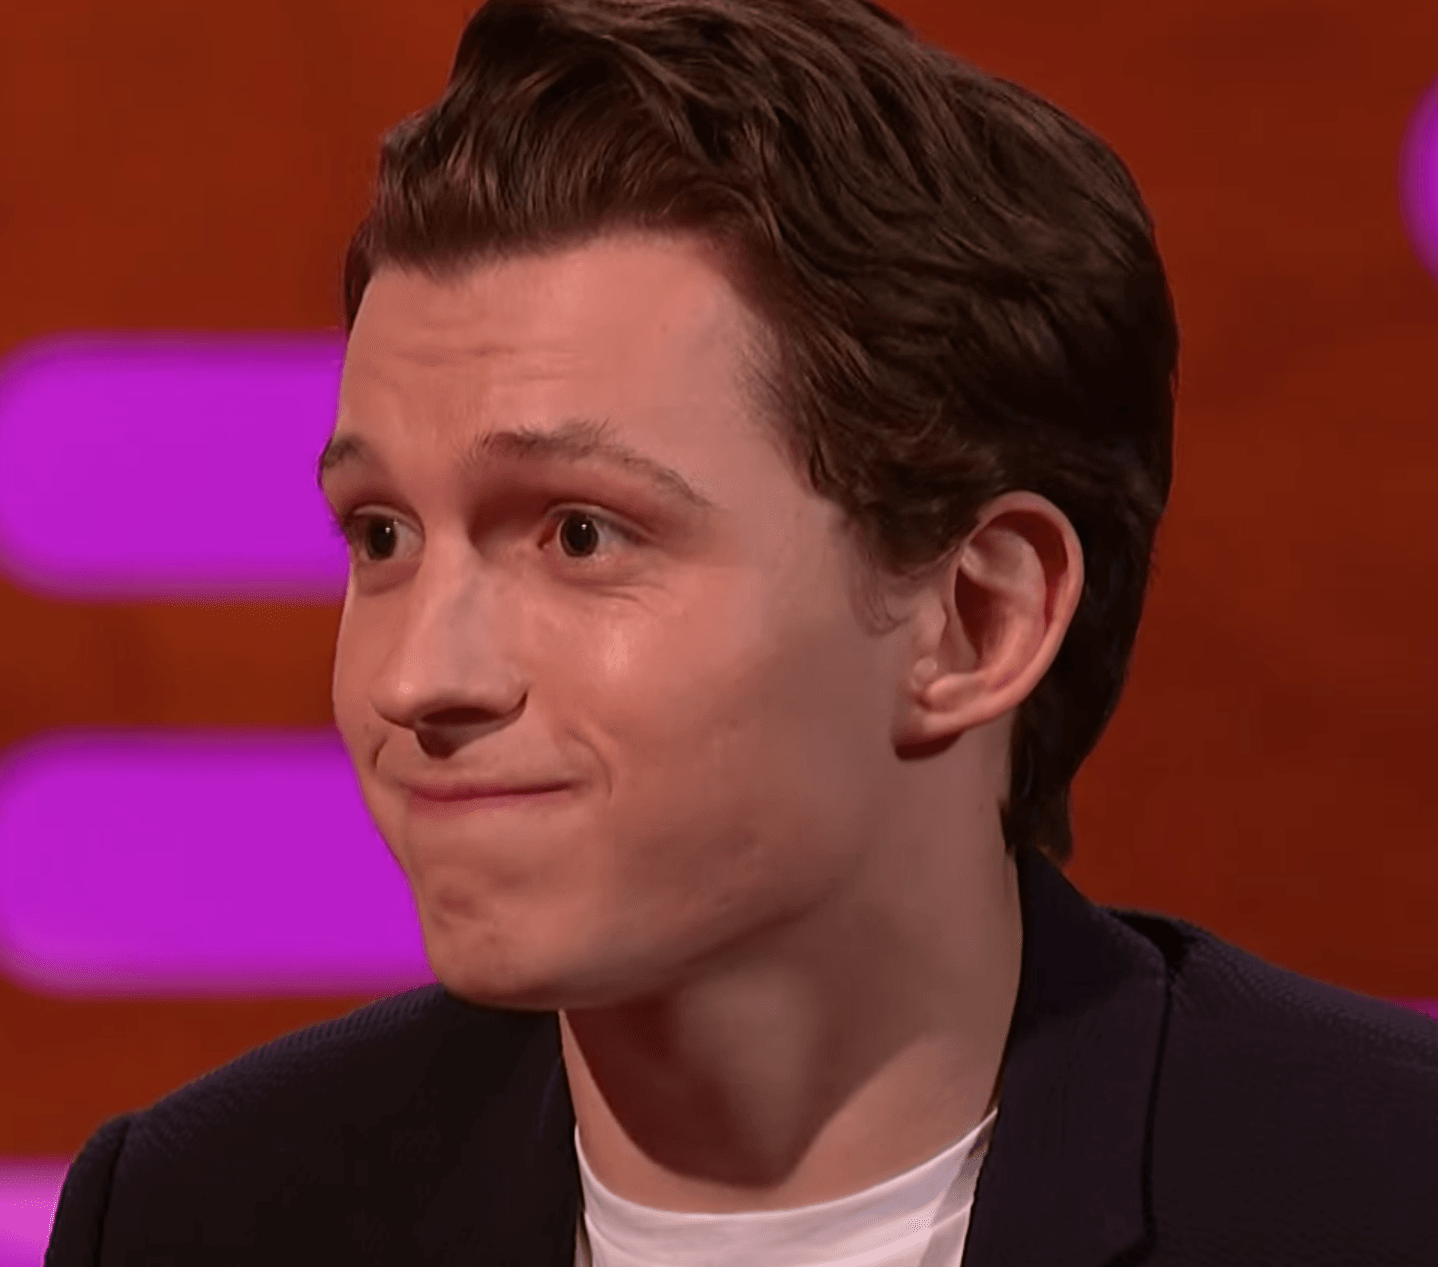 tom 23 e1597653714857 20 Things You Probably Never Knew About Tom Holland